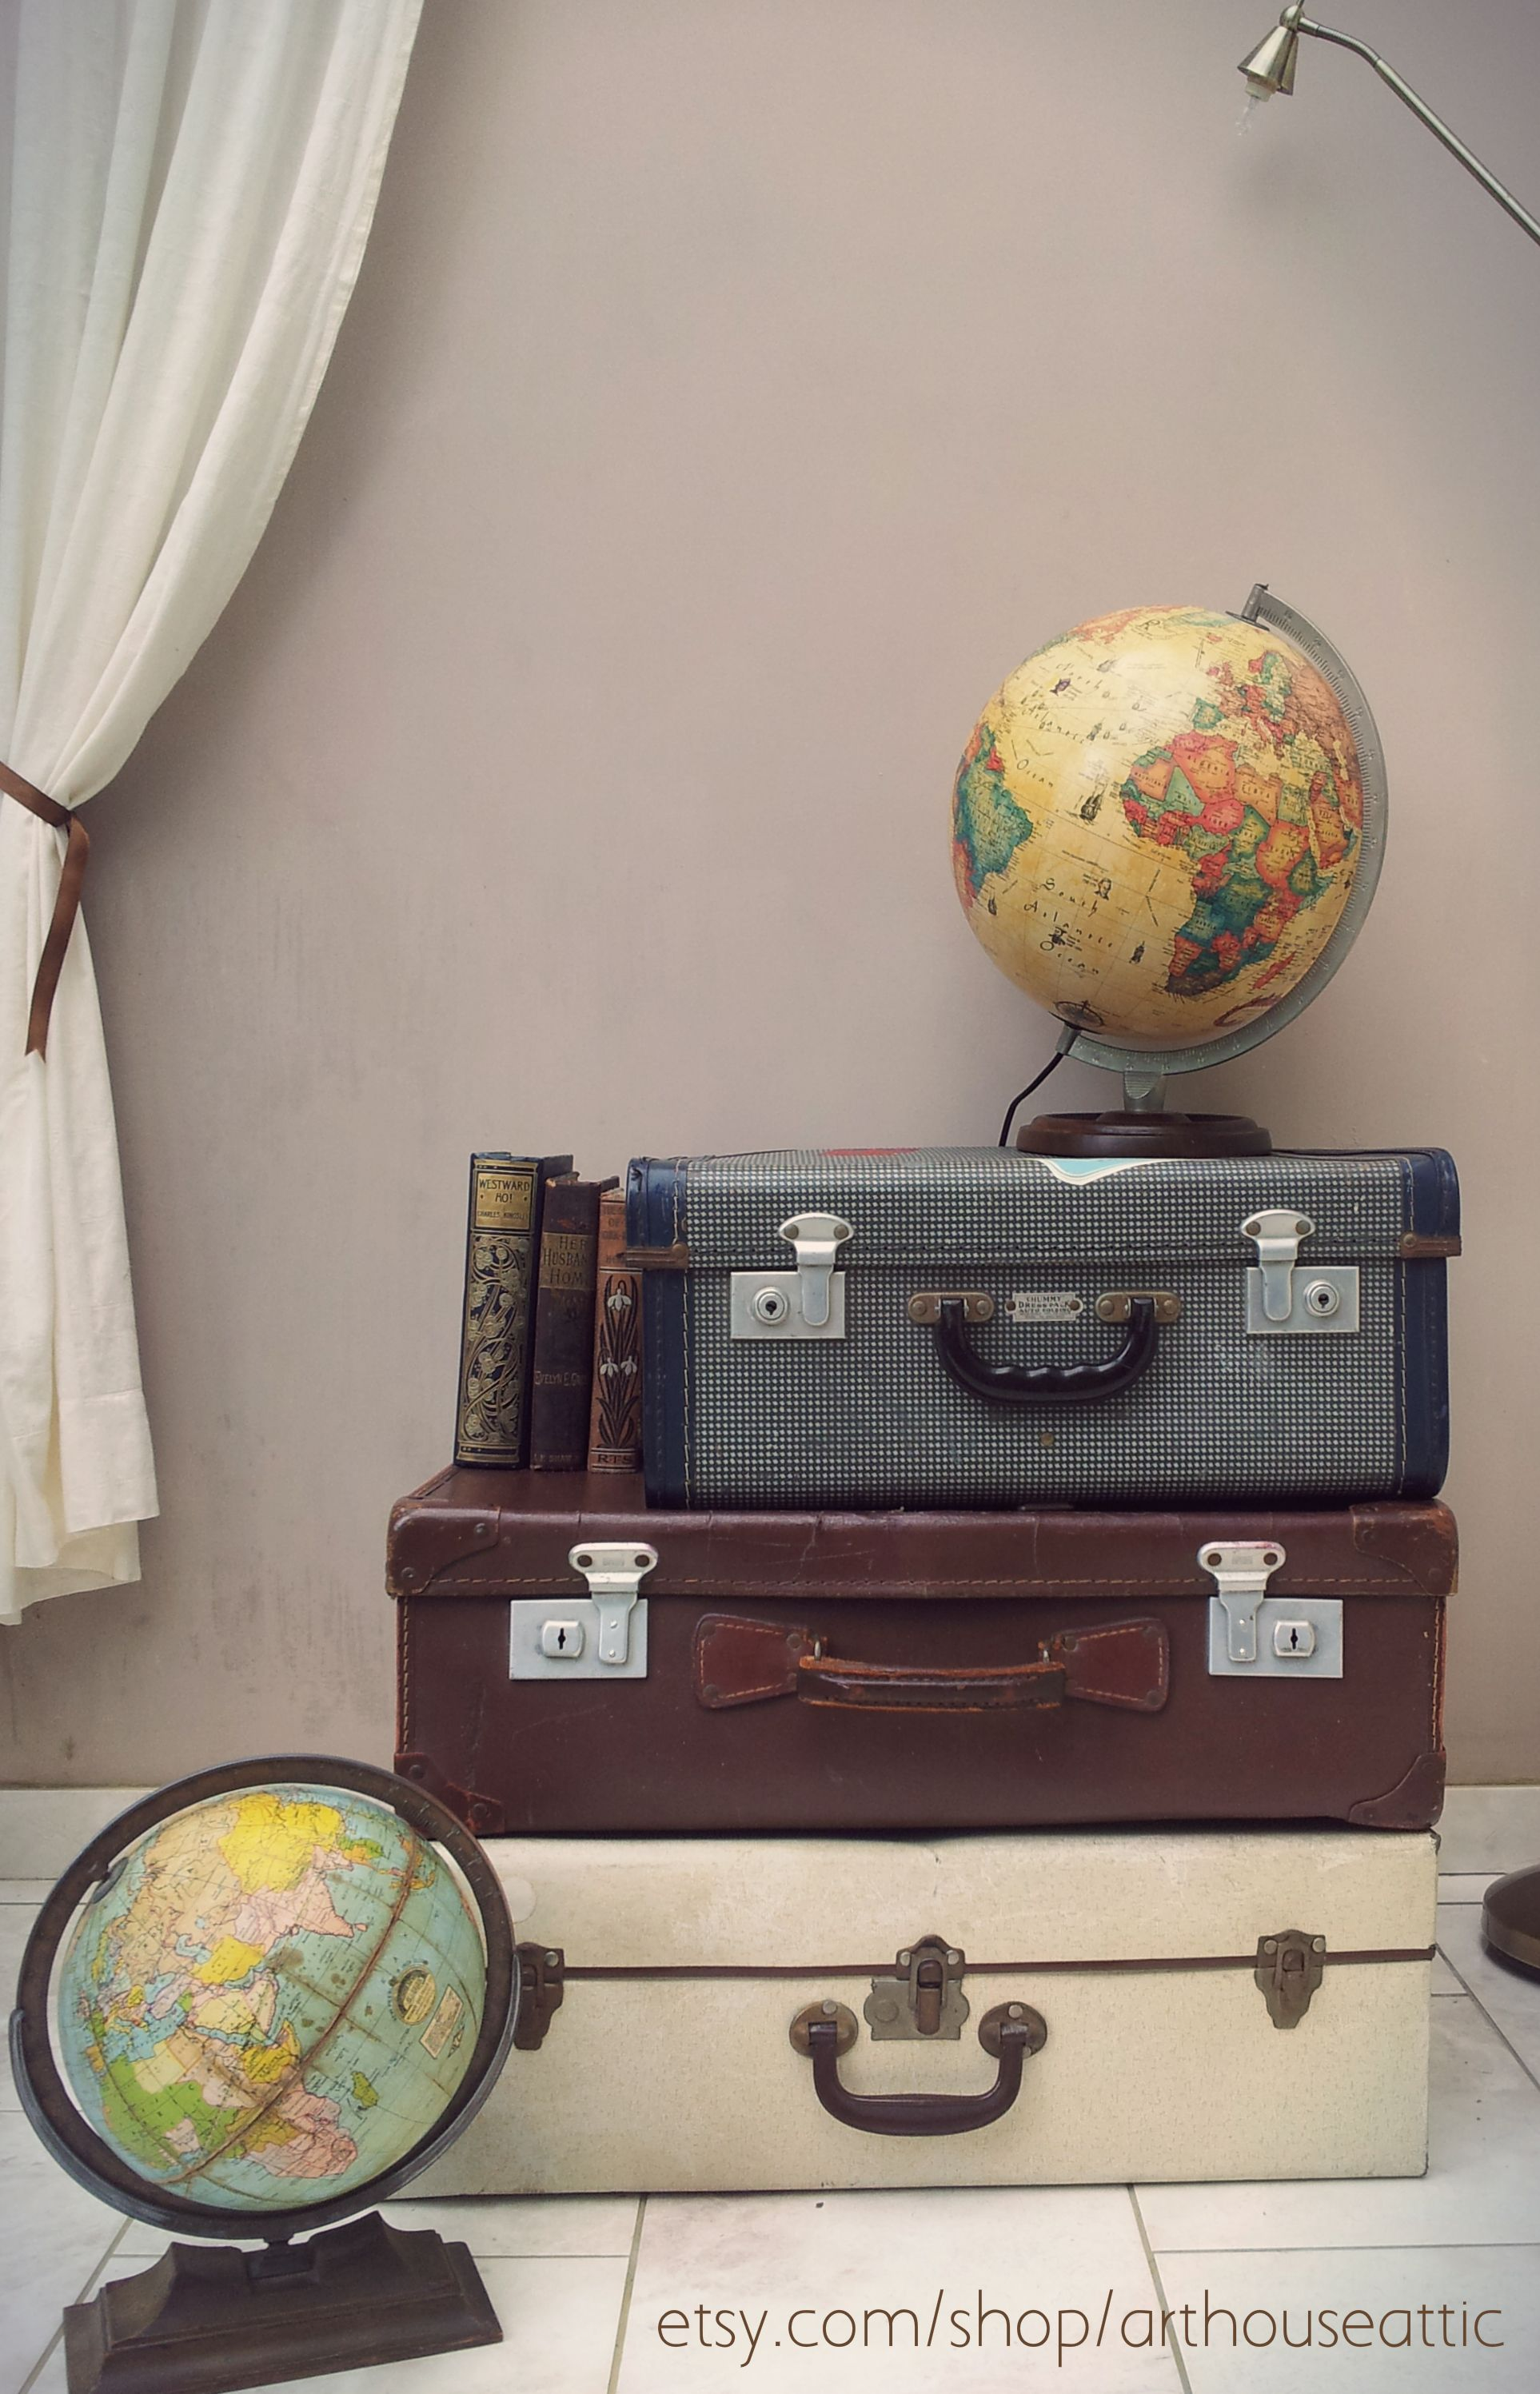 Vintage suitcases for stacking storage or side table £70.00 #vintage #storage #suitcases #vintagetrunks #vintageuk #forsale